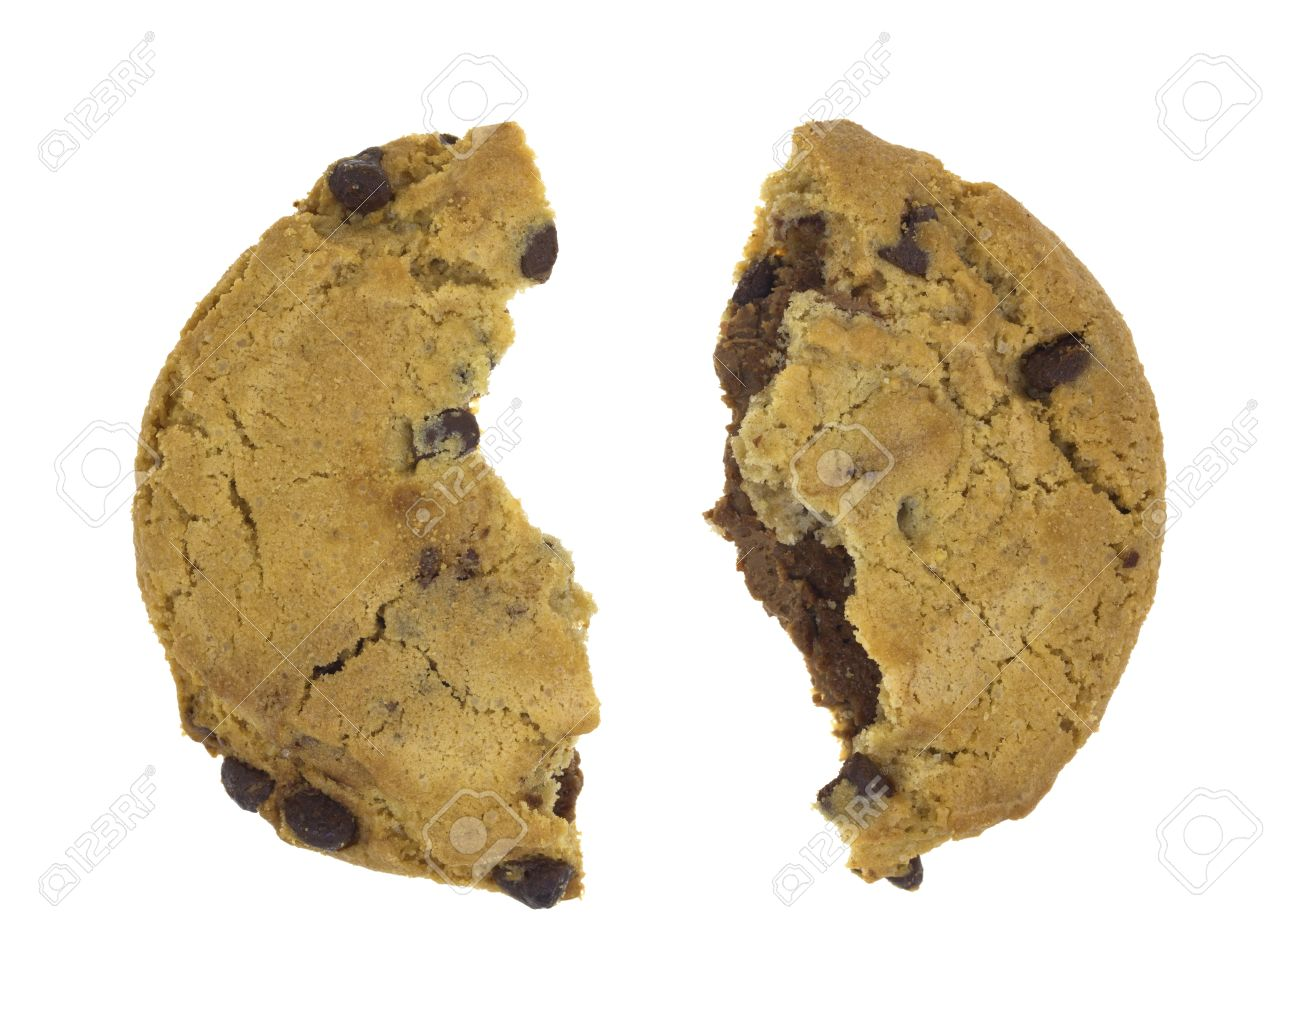 Image result for HALF A COOKIE